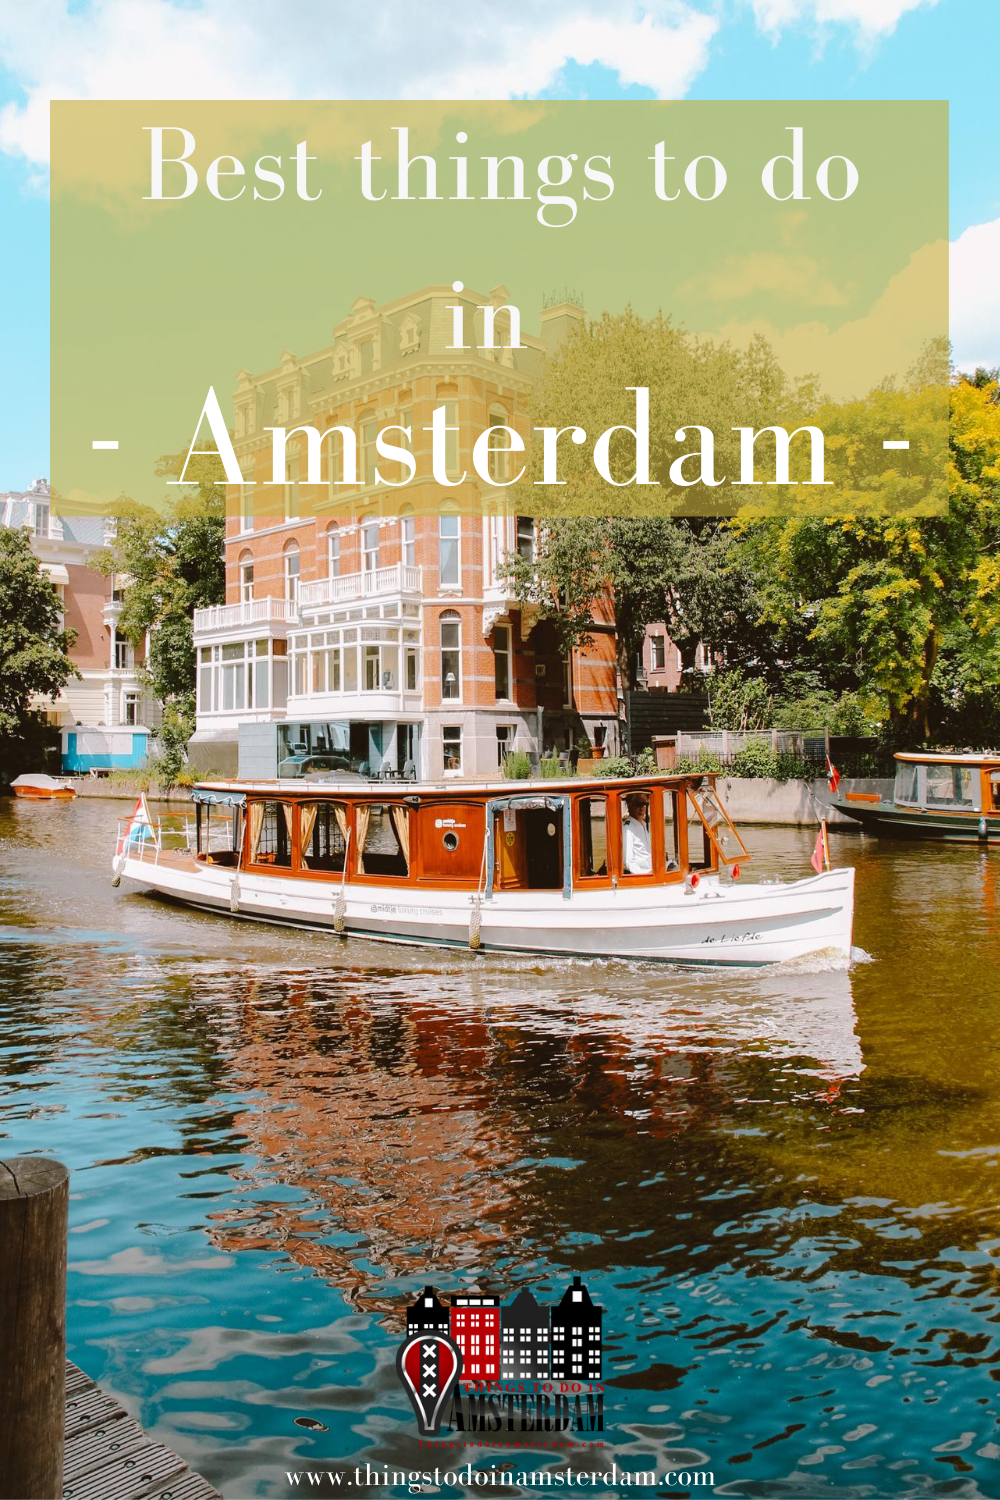 50 Best Things To Do In Amsterdam Netherlands Tourism 0